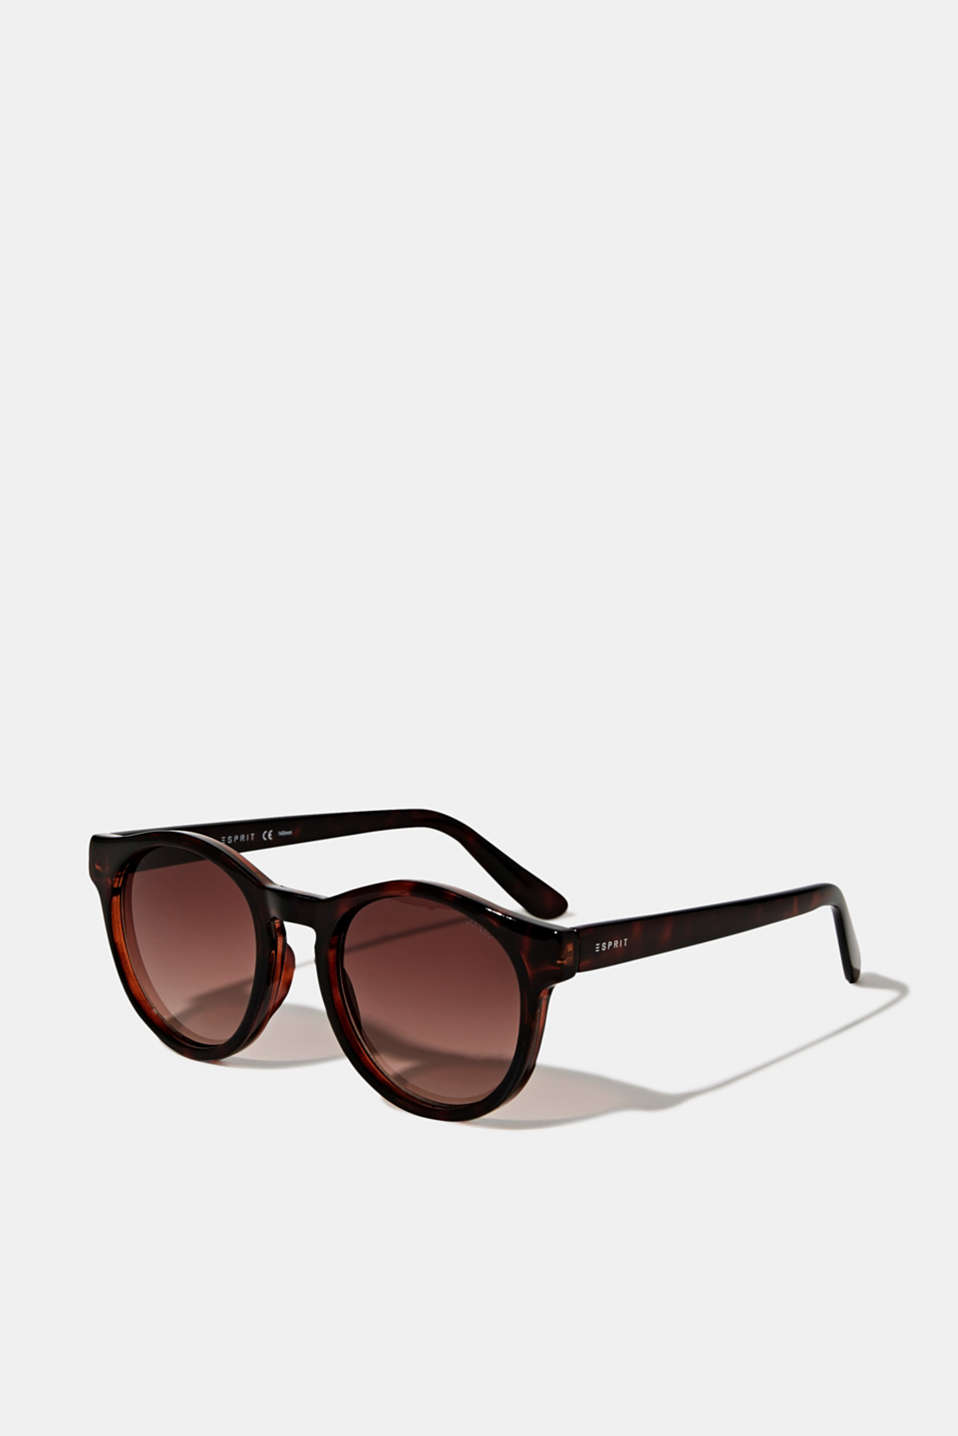 Sunglasses with round lenses, LCHAVANNA, detail image number 0